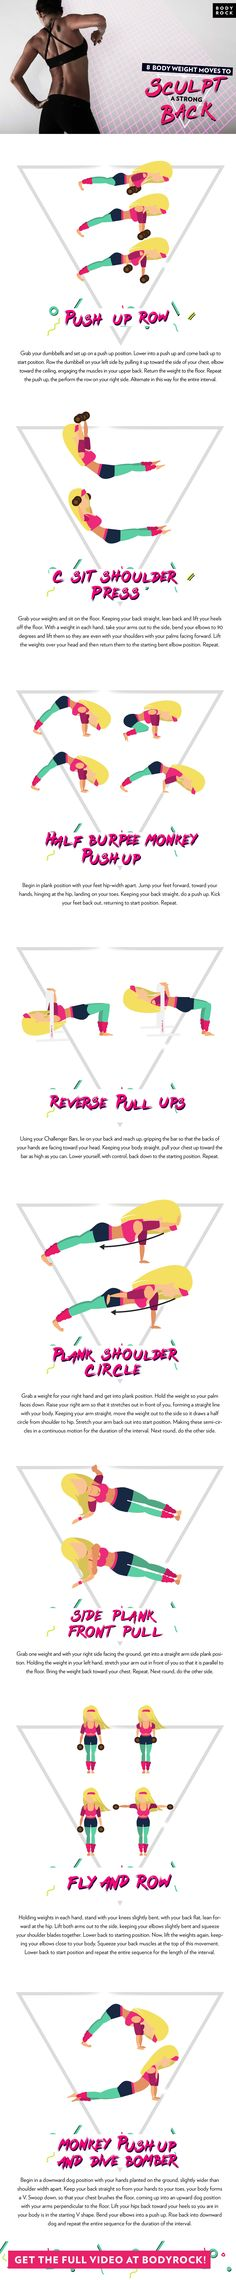 Here are 8 bodyweight moves to sculpt a strong back! Add this routine to your workout to get that strong sculpted back!